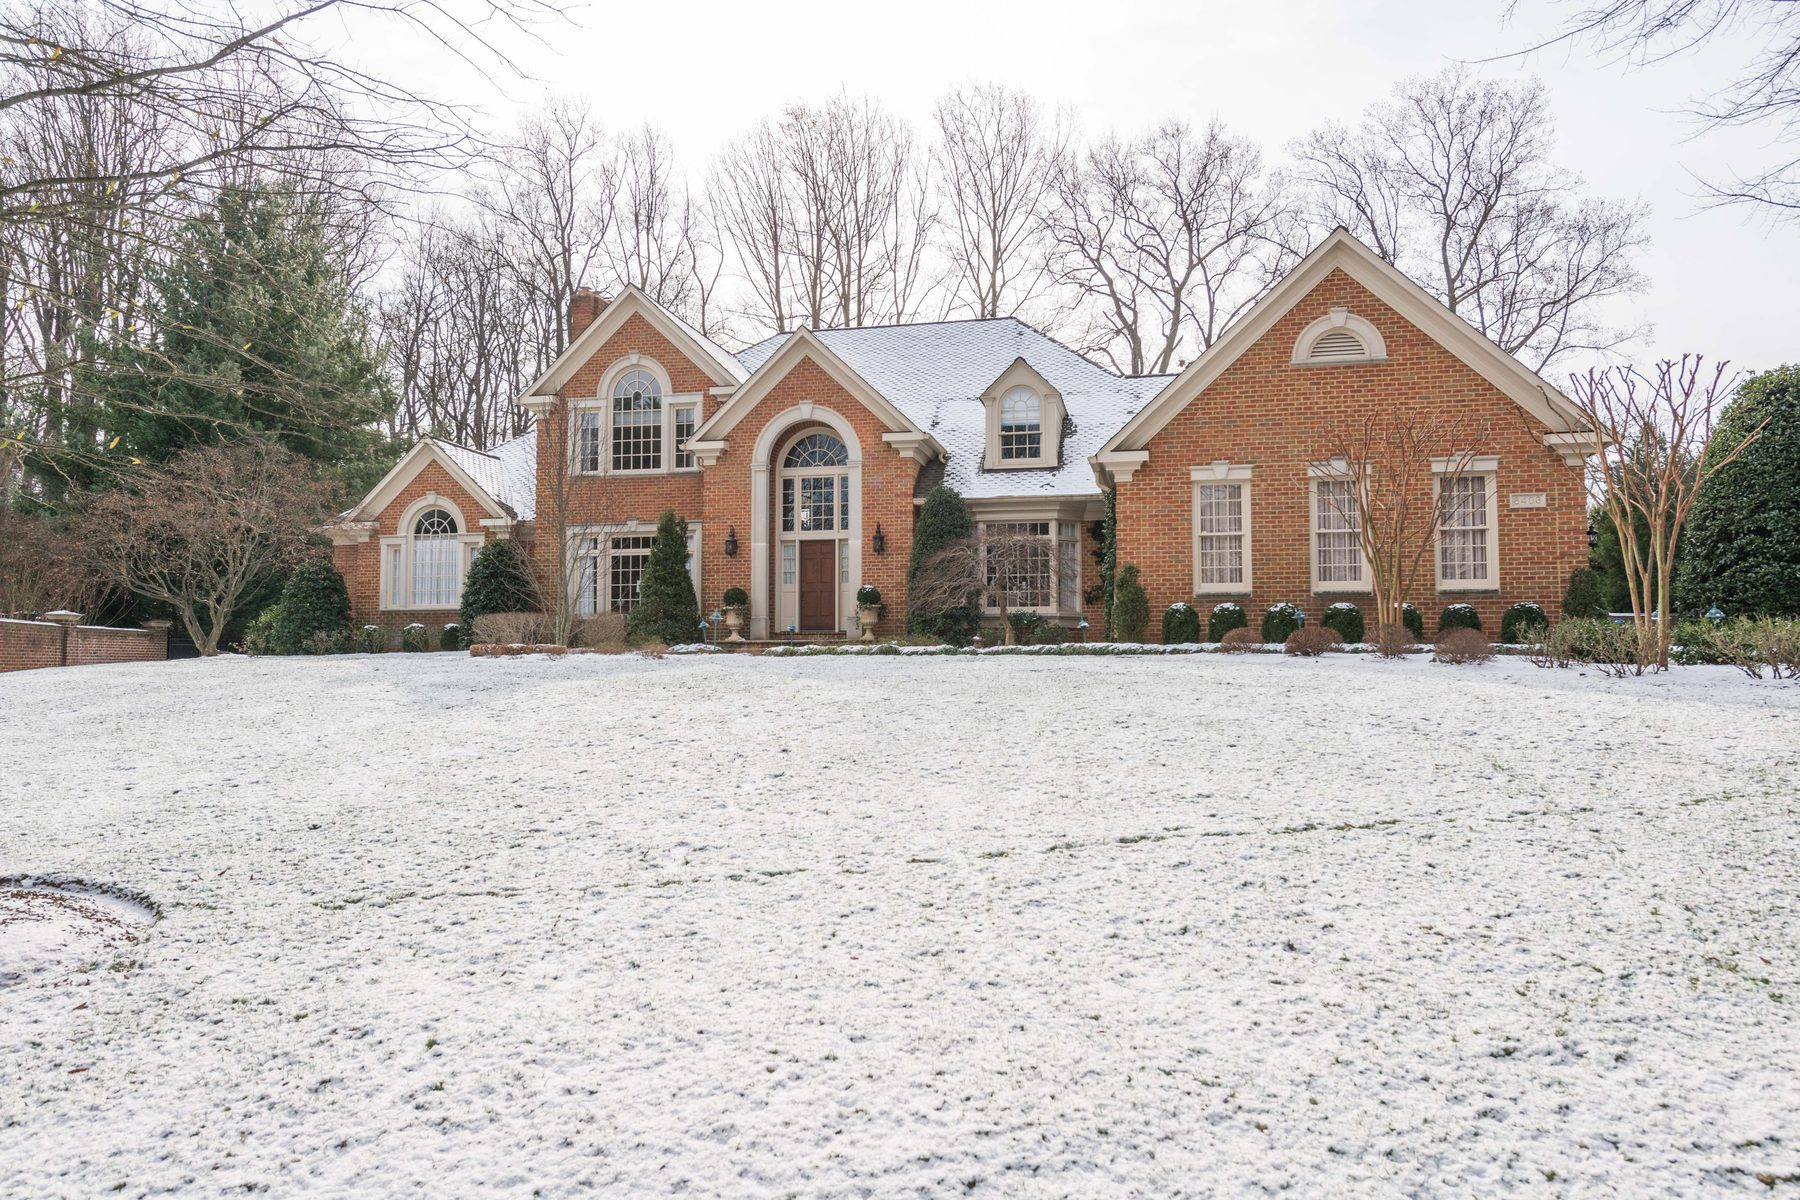 Single Family Home for Sale at 8403 Brookewood Court, Mclean 8403 Brookewood Ct McLean, Virginia 22102 United States